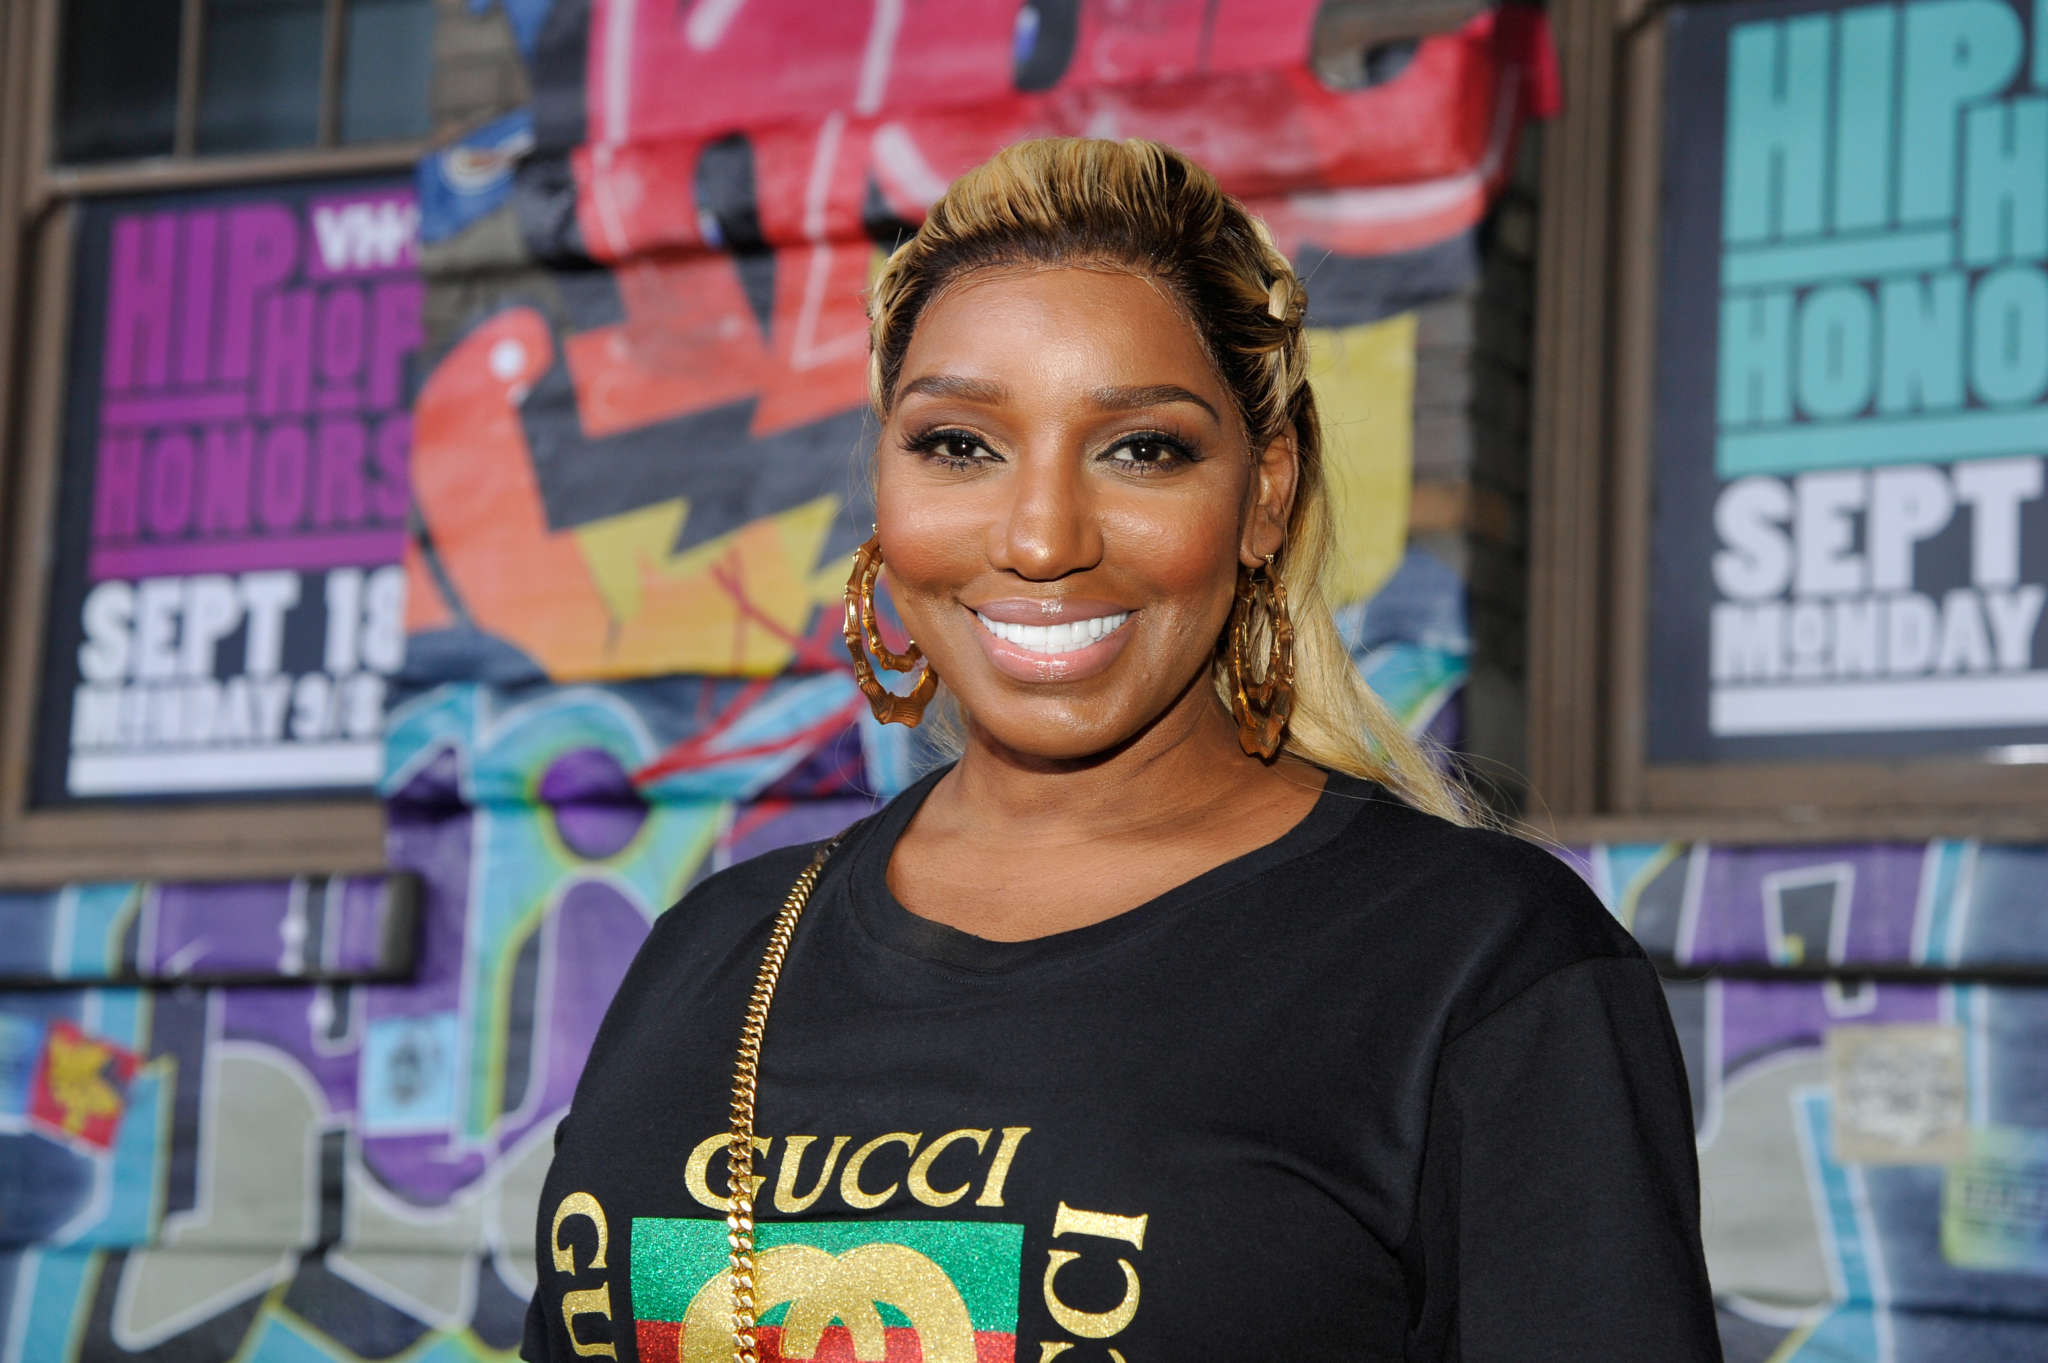 NeNe Leakes' Fans Can Meet Her At The Swagg Boutique Today For A 'Sip & Shop' Session